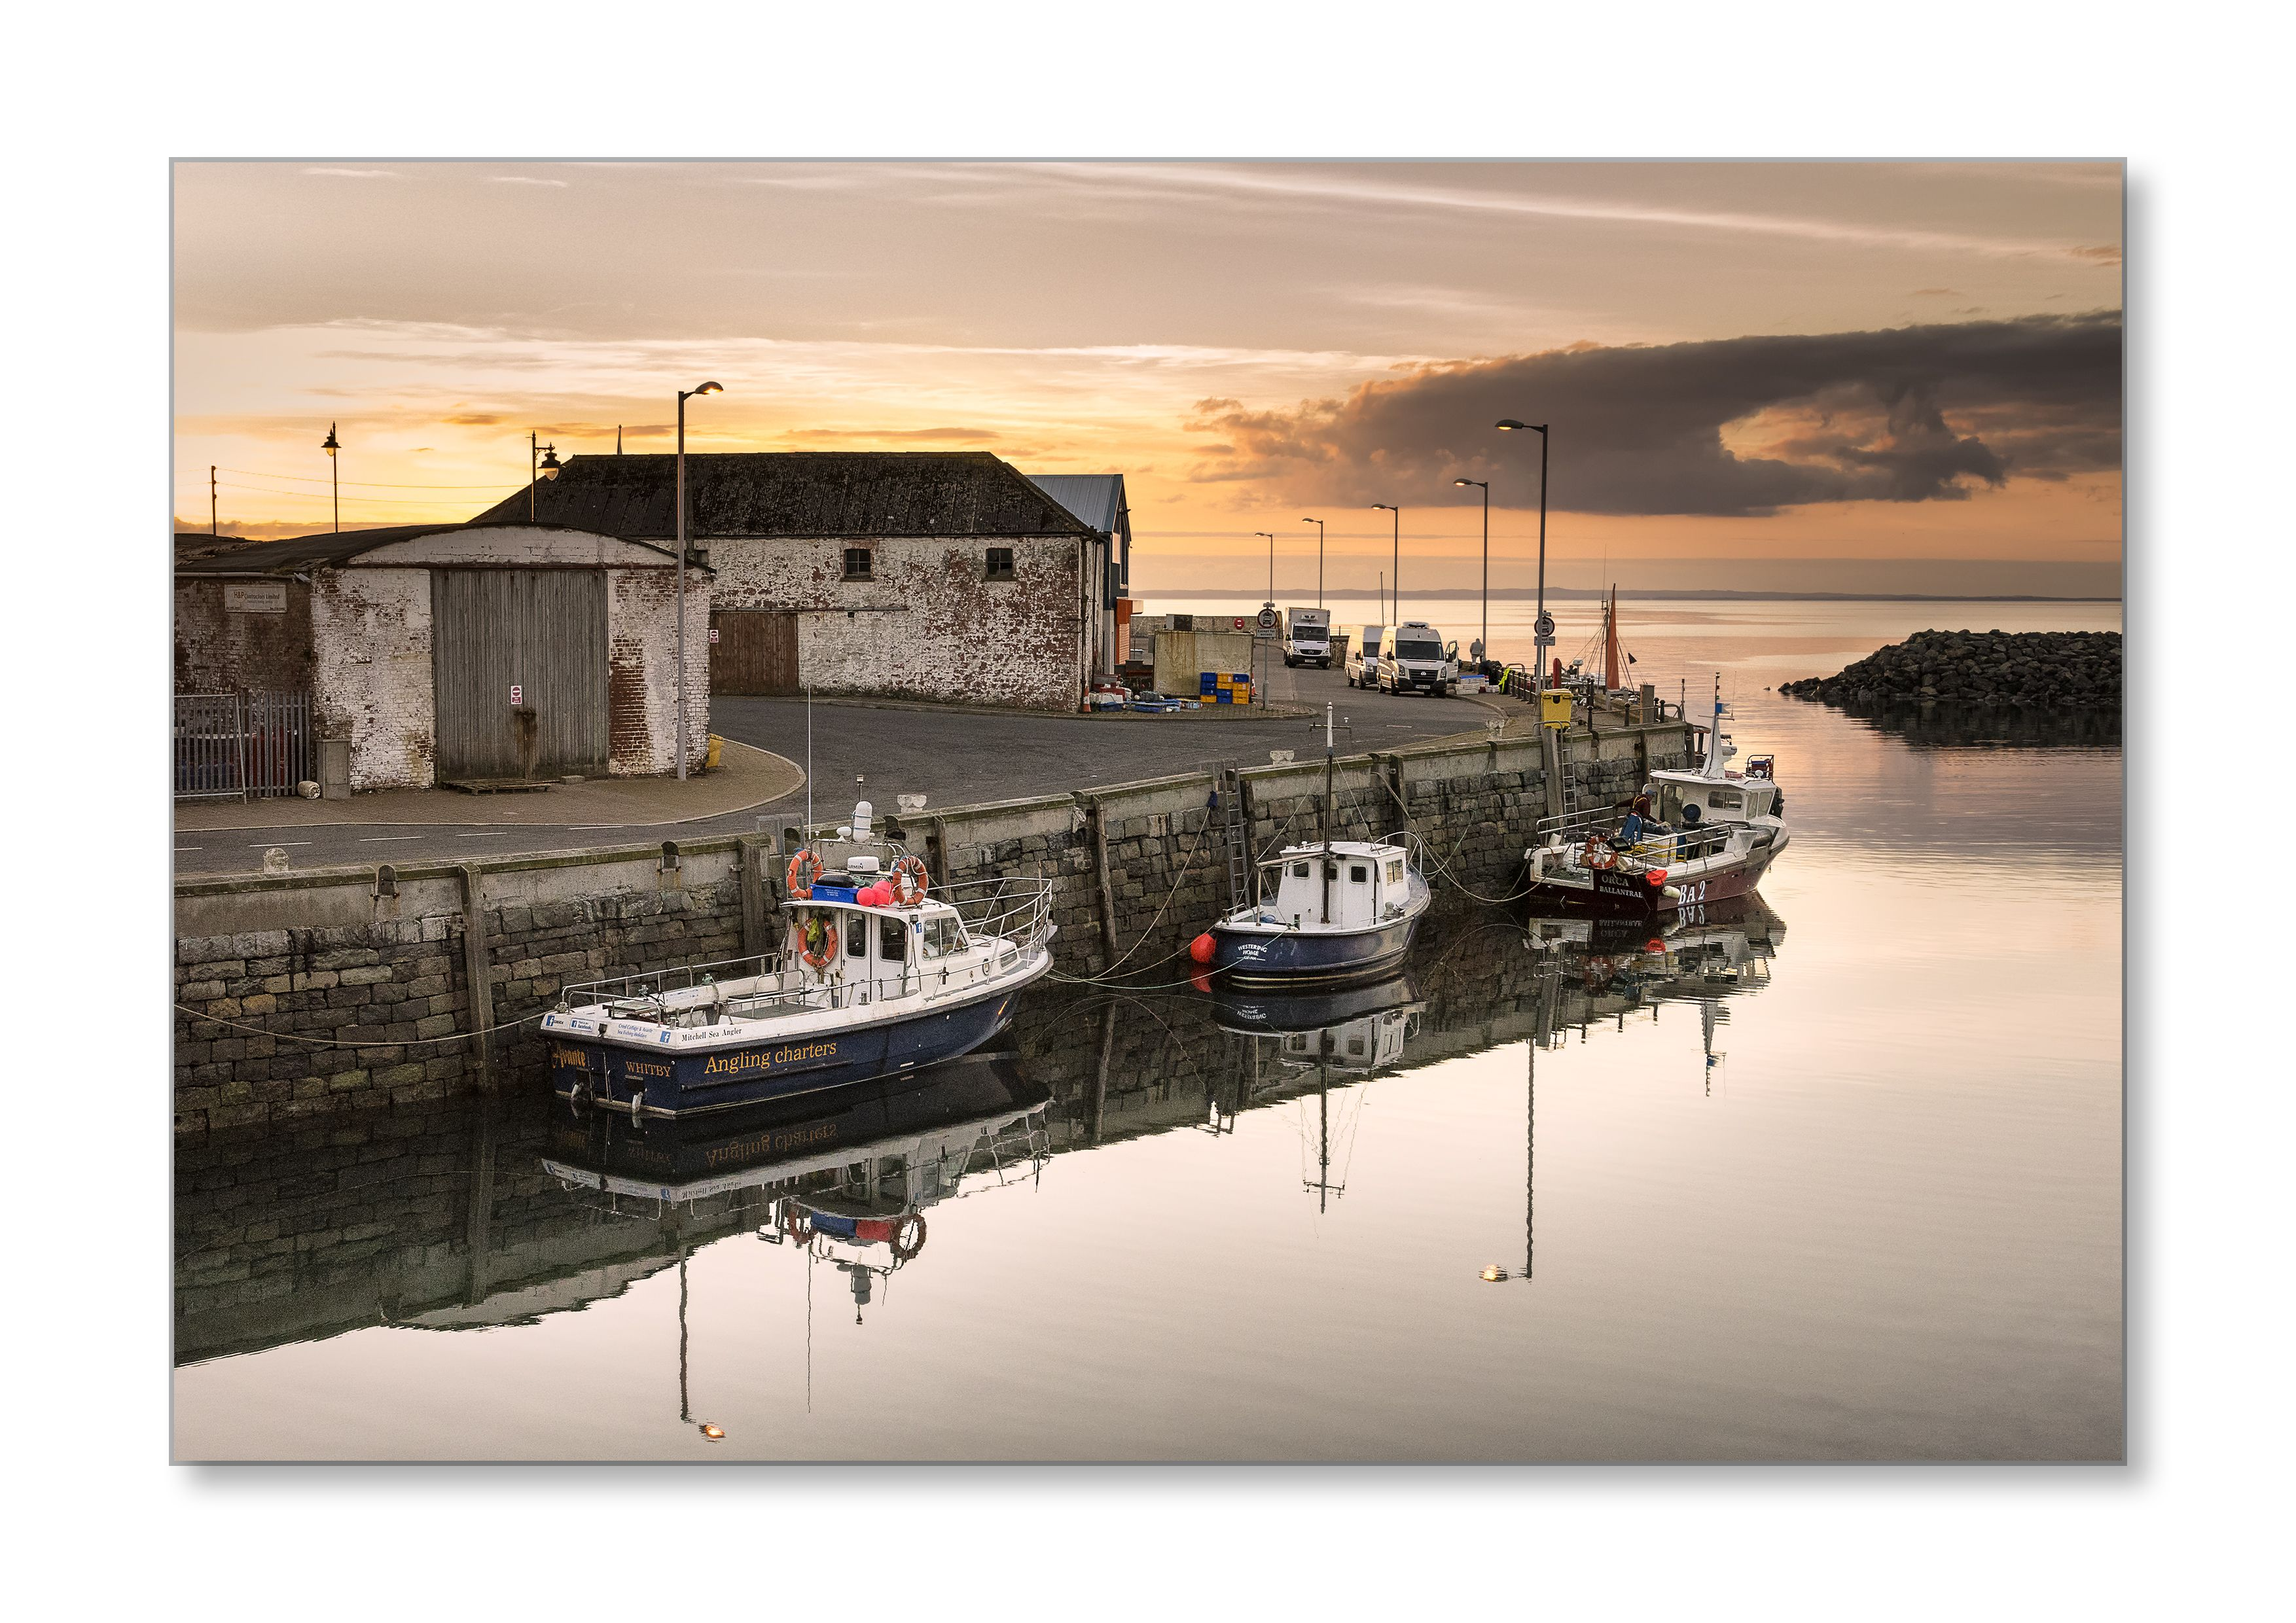 Port William Harbour  Check it out on my Flickr page  www